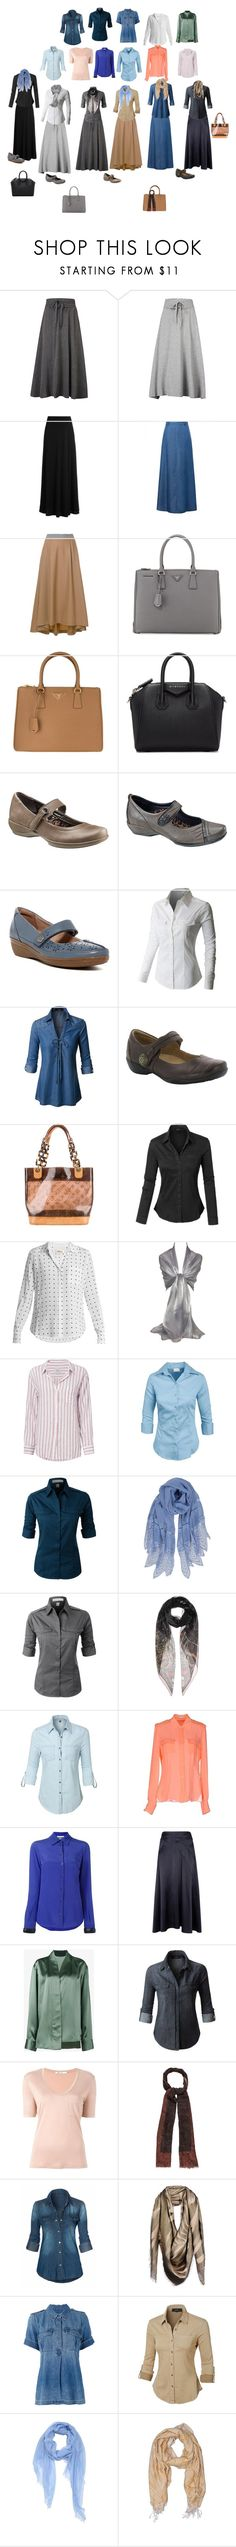 """capsule wardrobe"" by wd1371 on Polyvore featuring The Row, WithChic, FABIANA FILIPPI, Prada, Givenchy, Aetrex, Clarks, LE3NO, taos Footwear and Louis Vuitton"